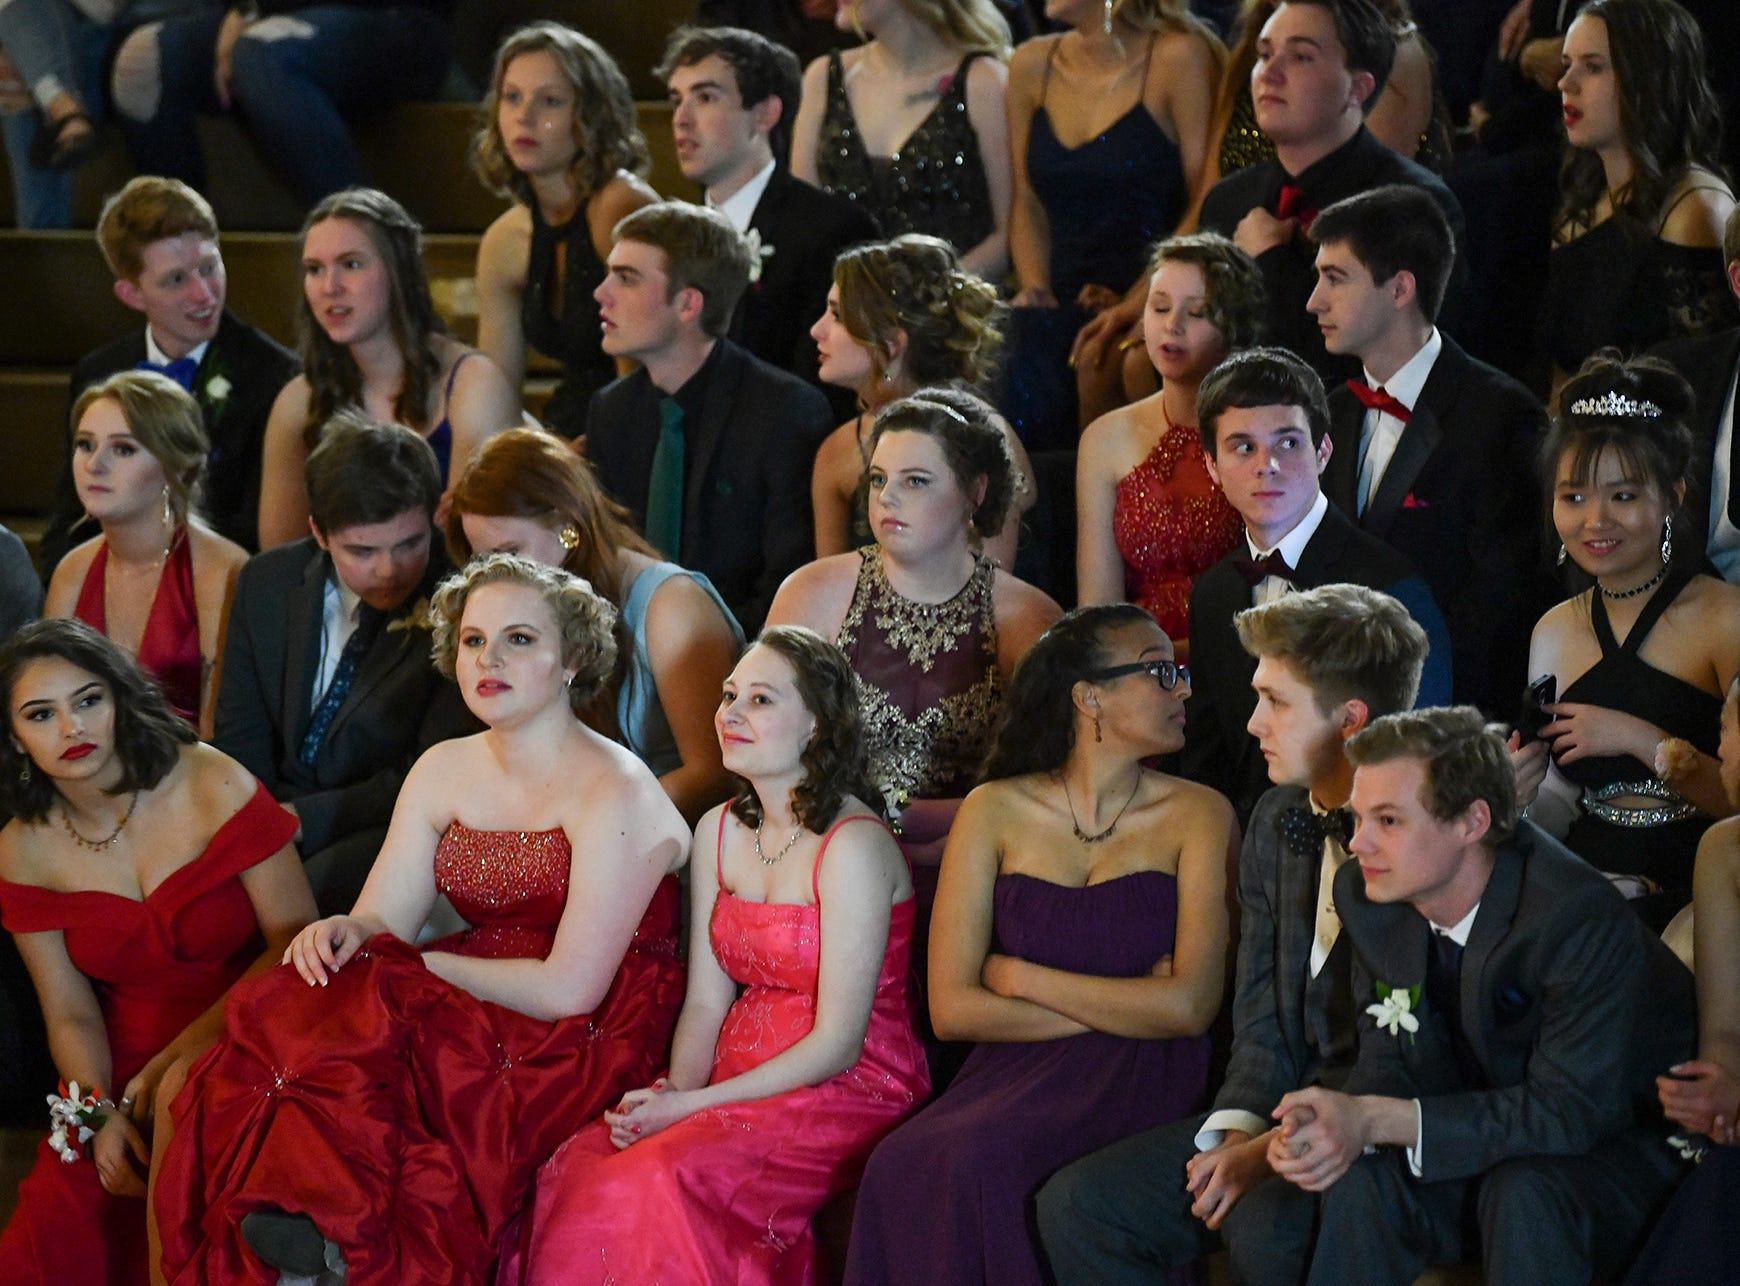 Students watch their classmates during prom grand march Saturday, April 27, at Tech High School in St. Cloud.